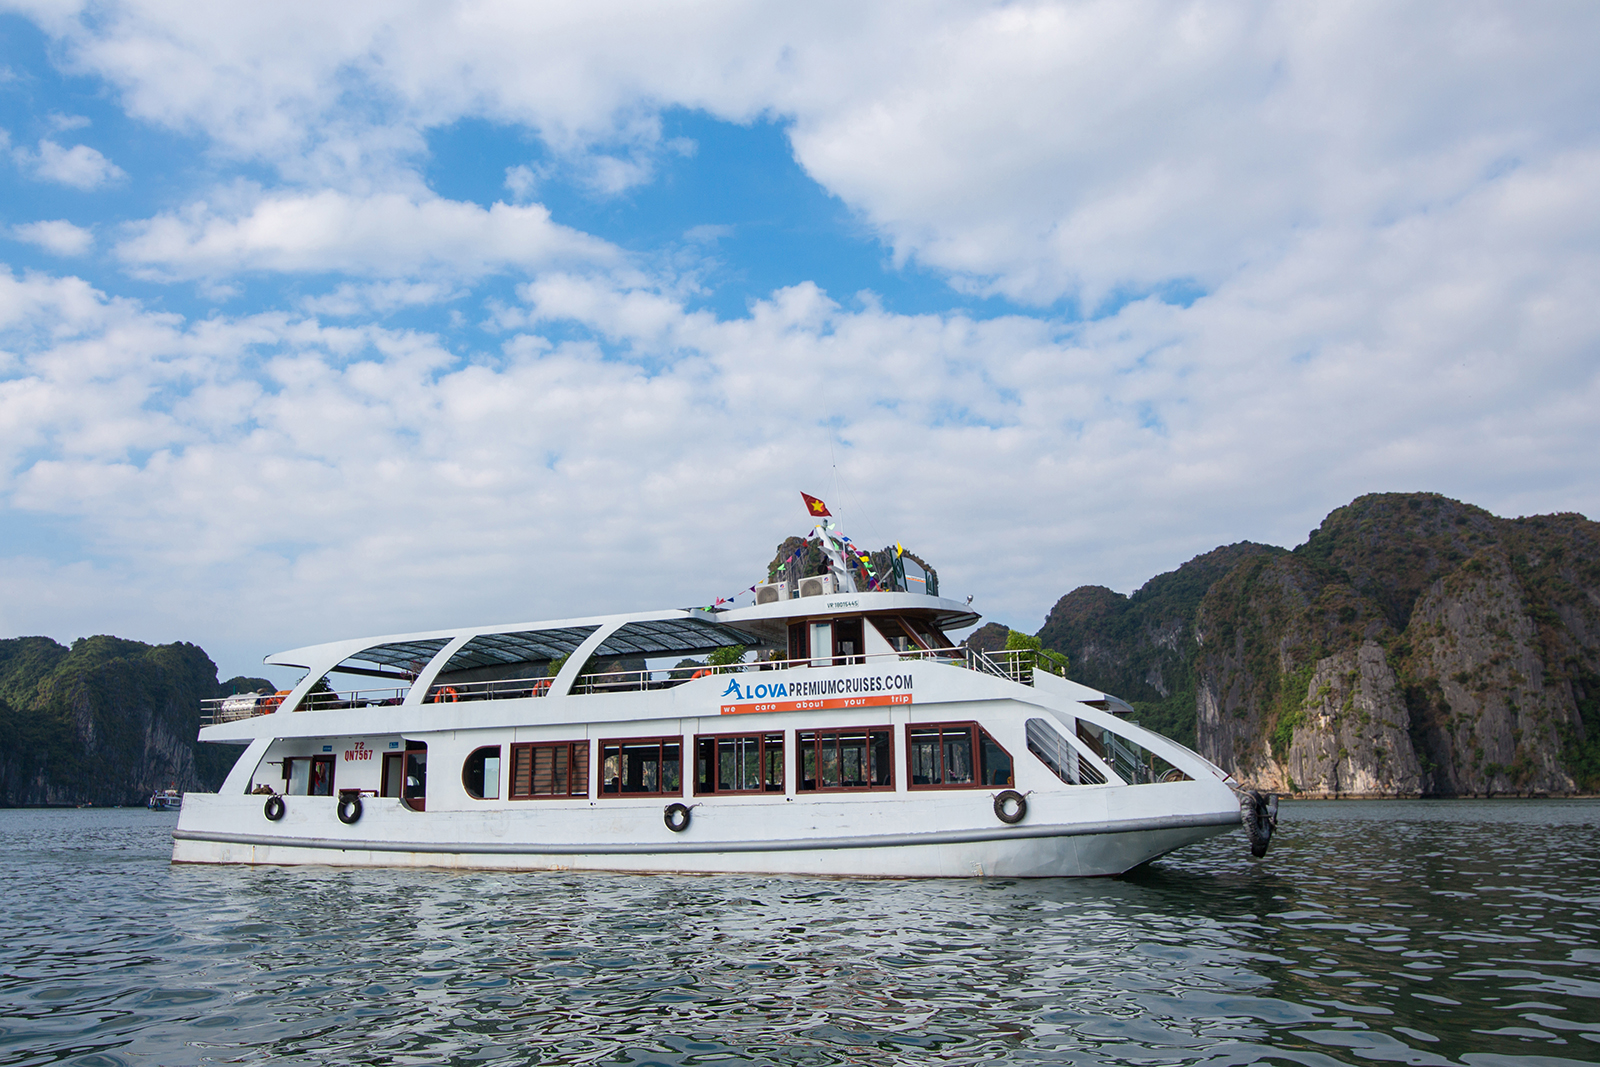 Ha long bay 1 day 5 hours, Tour, Ha long bay 1 day hours, Cozy Vietnam Travel